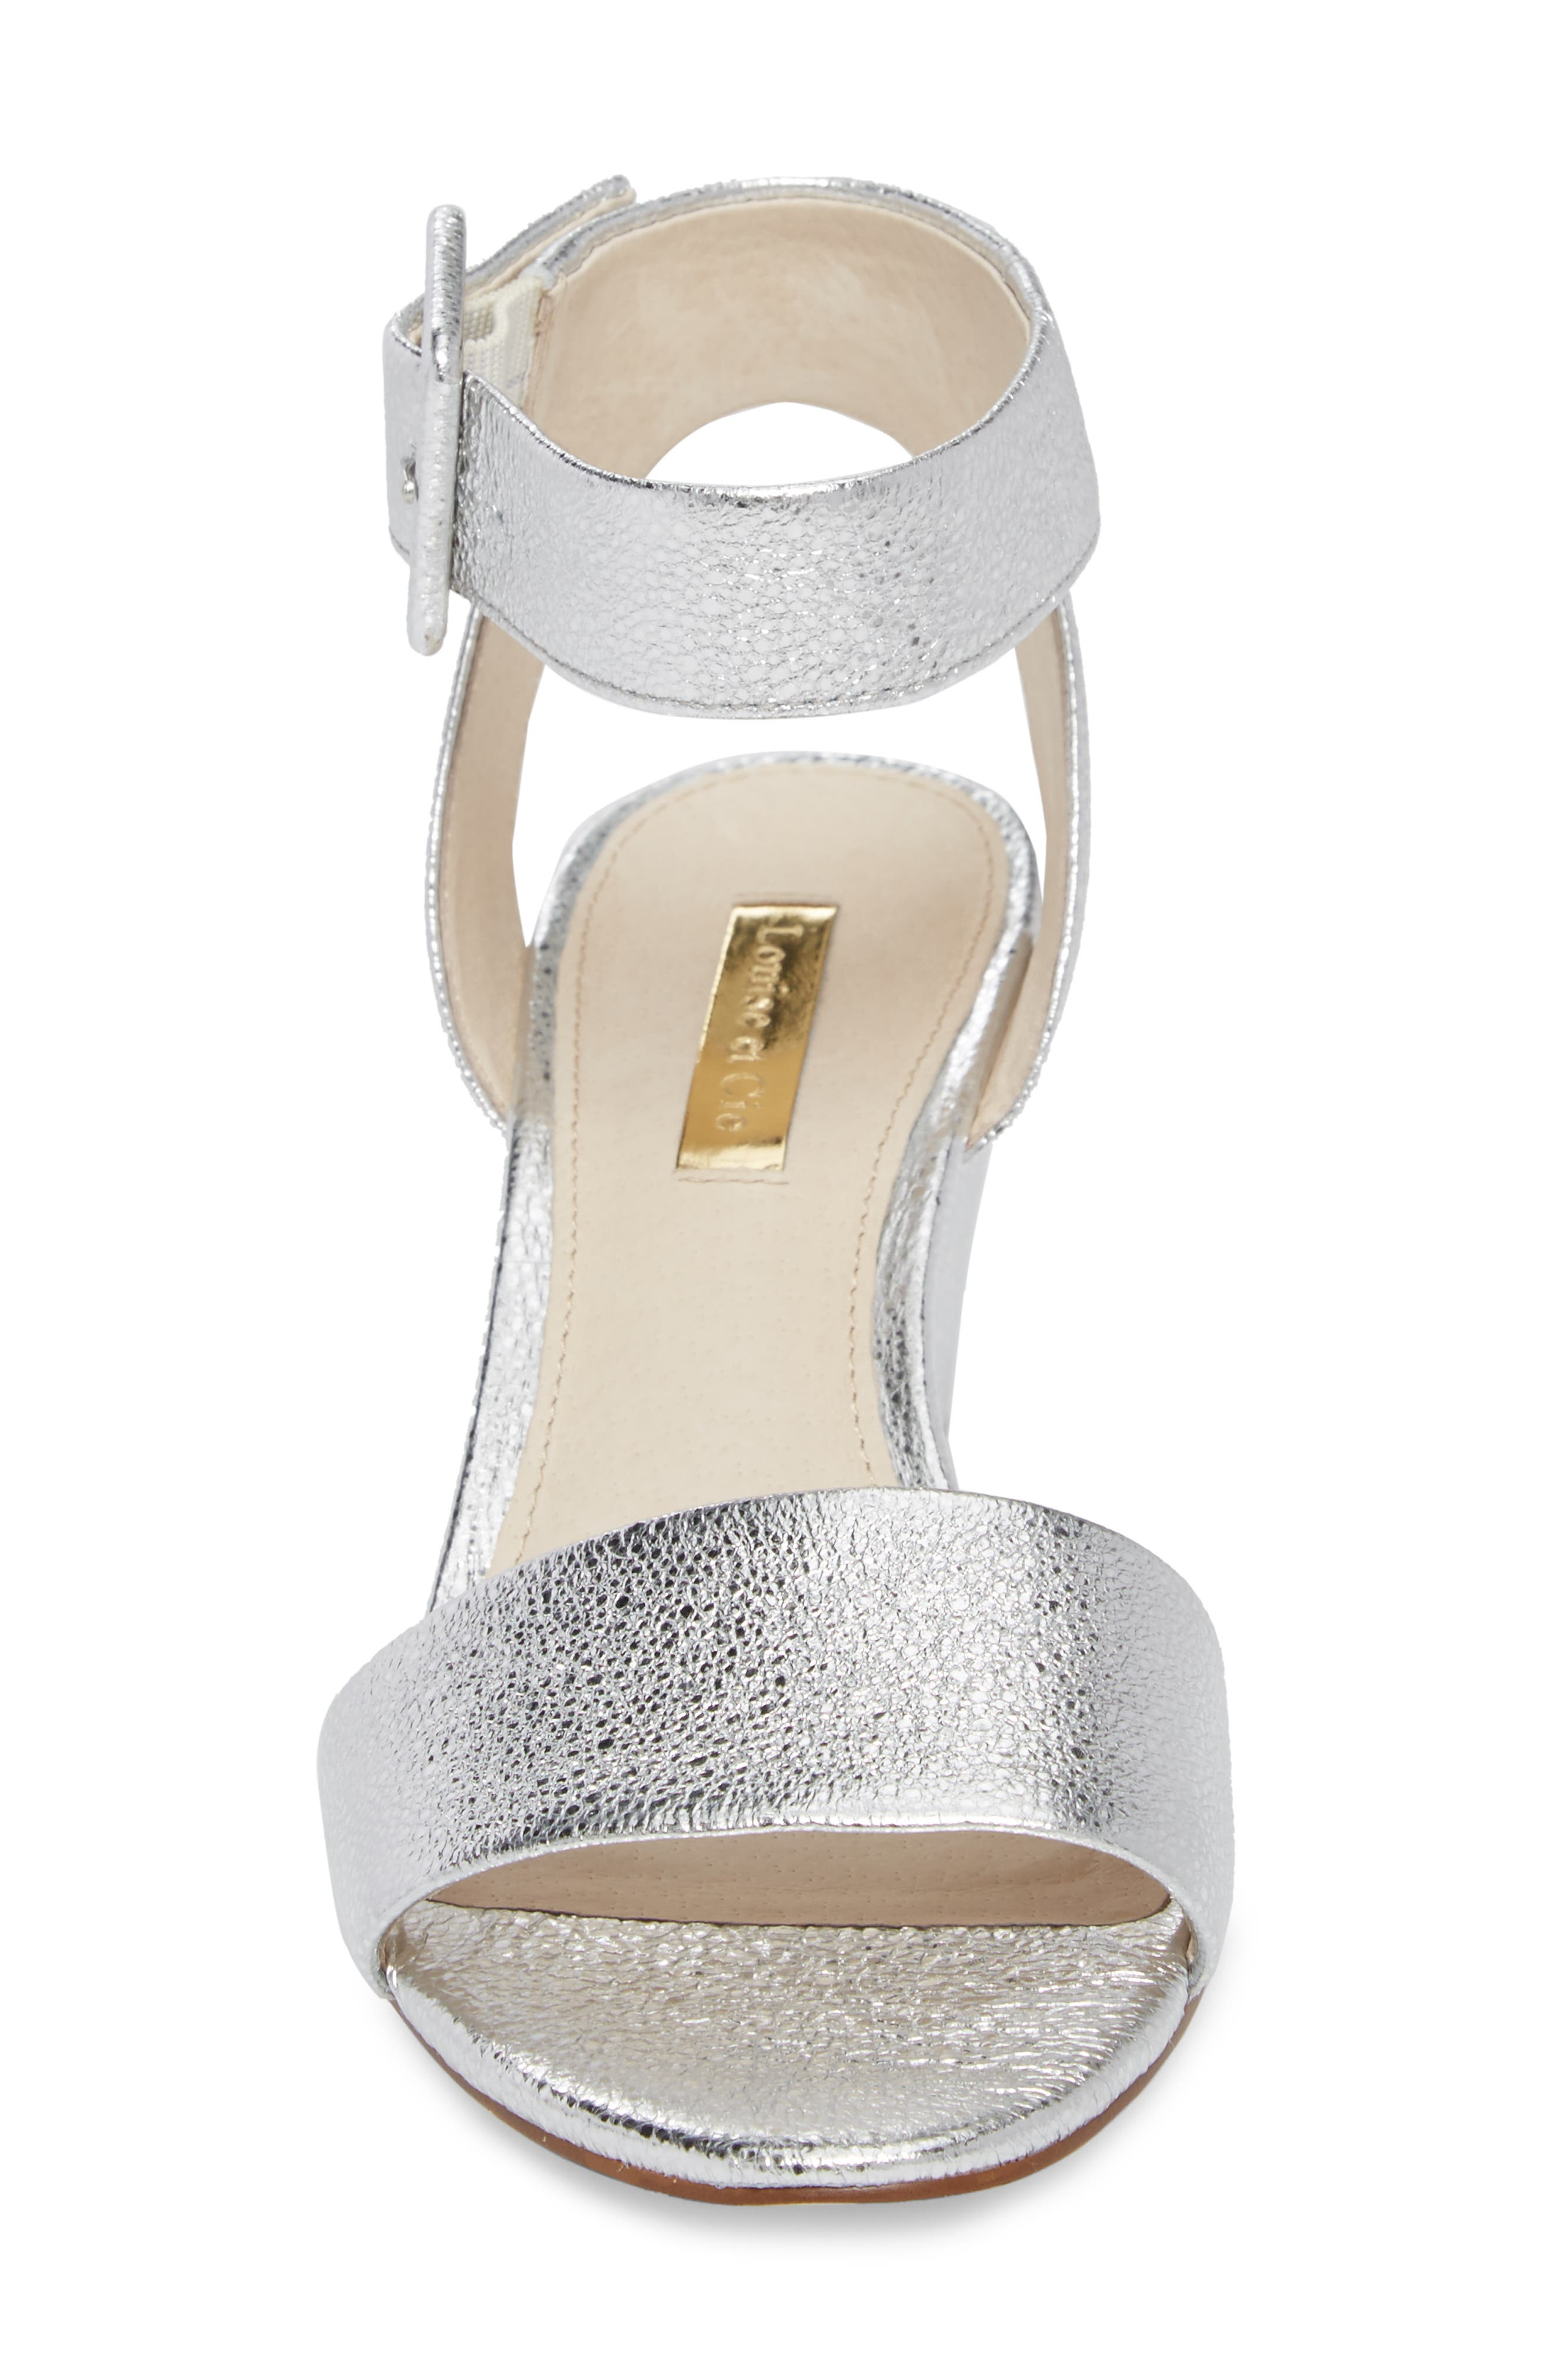 LOUISE ET CIE, Punya Wedge Sandal, Alternate thumbnail 4, color, STERLING LEATHER